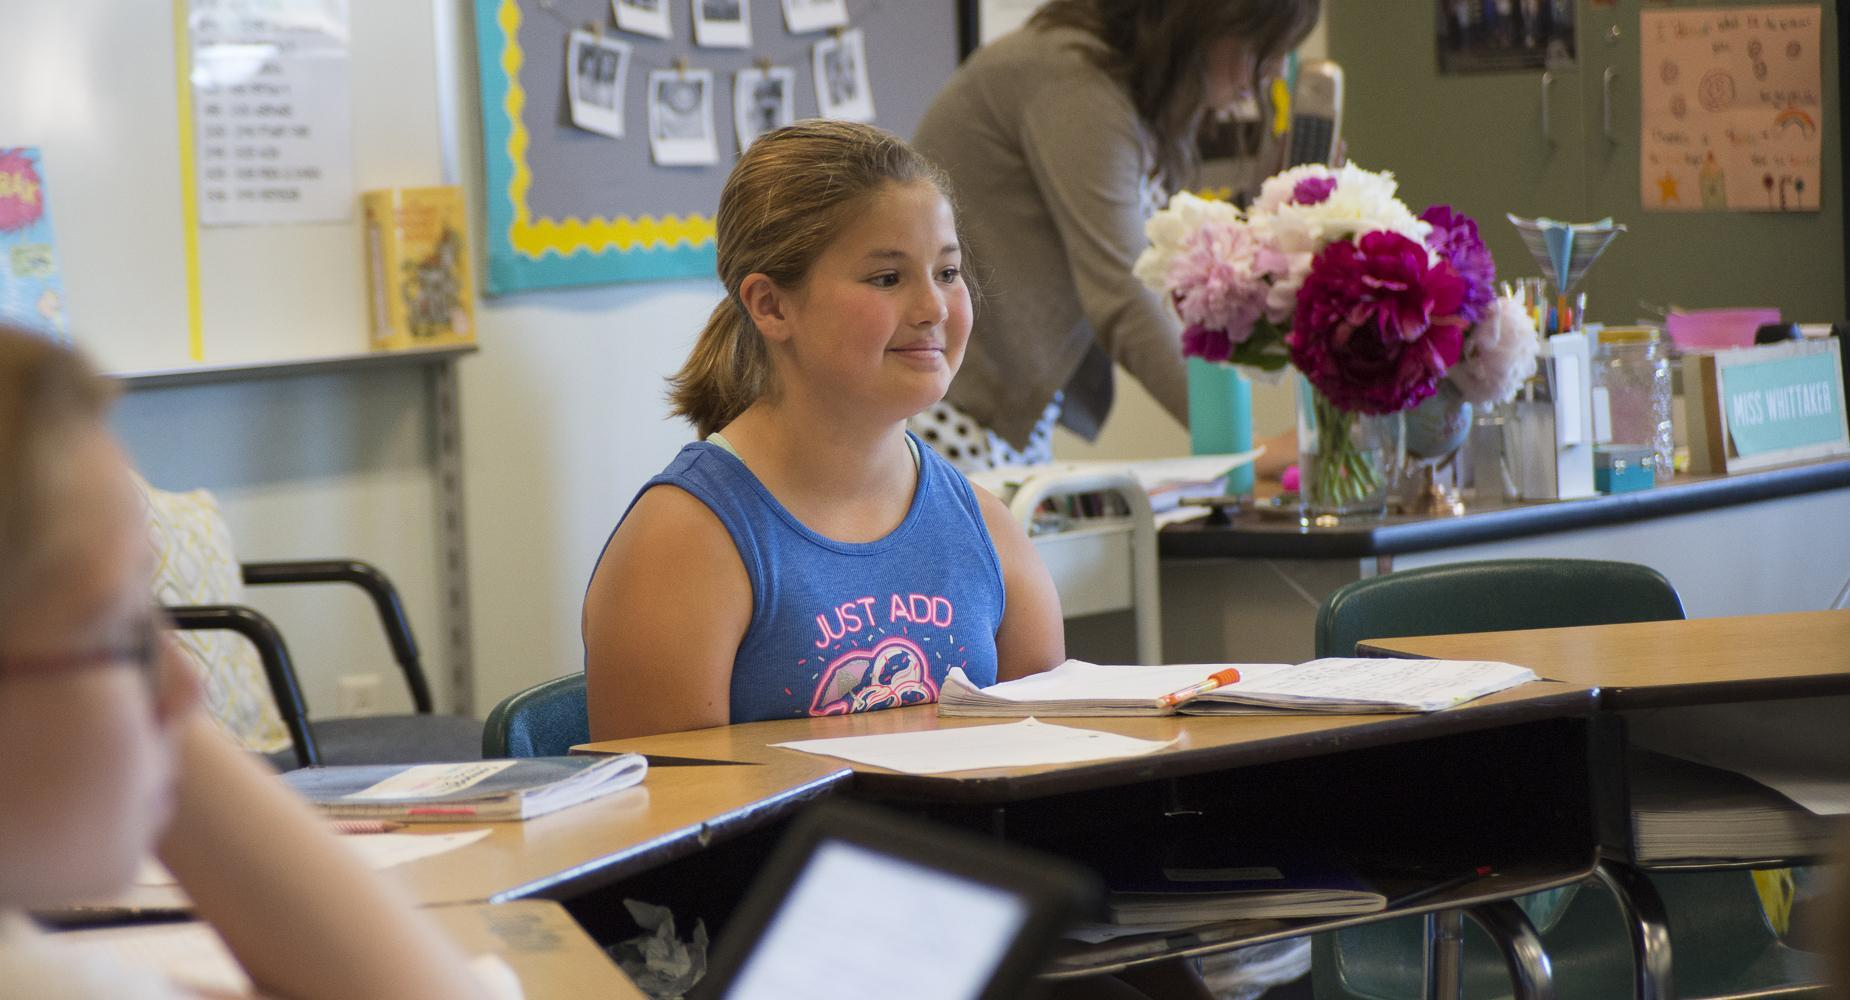 Girl sits at desk with teacher's flowers in the background.